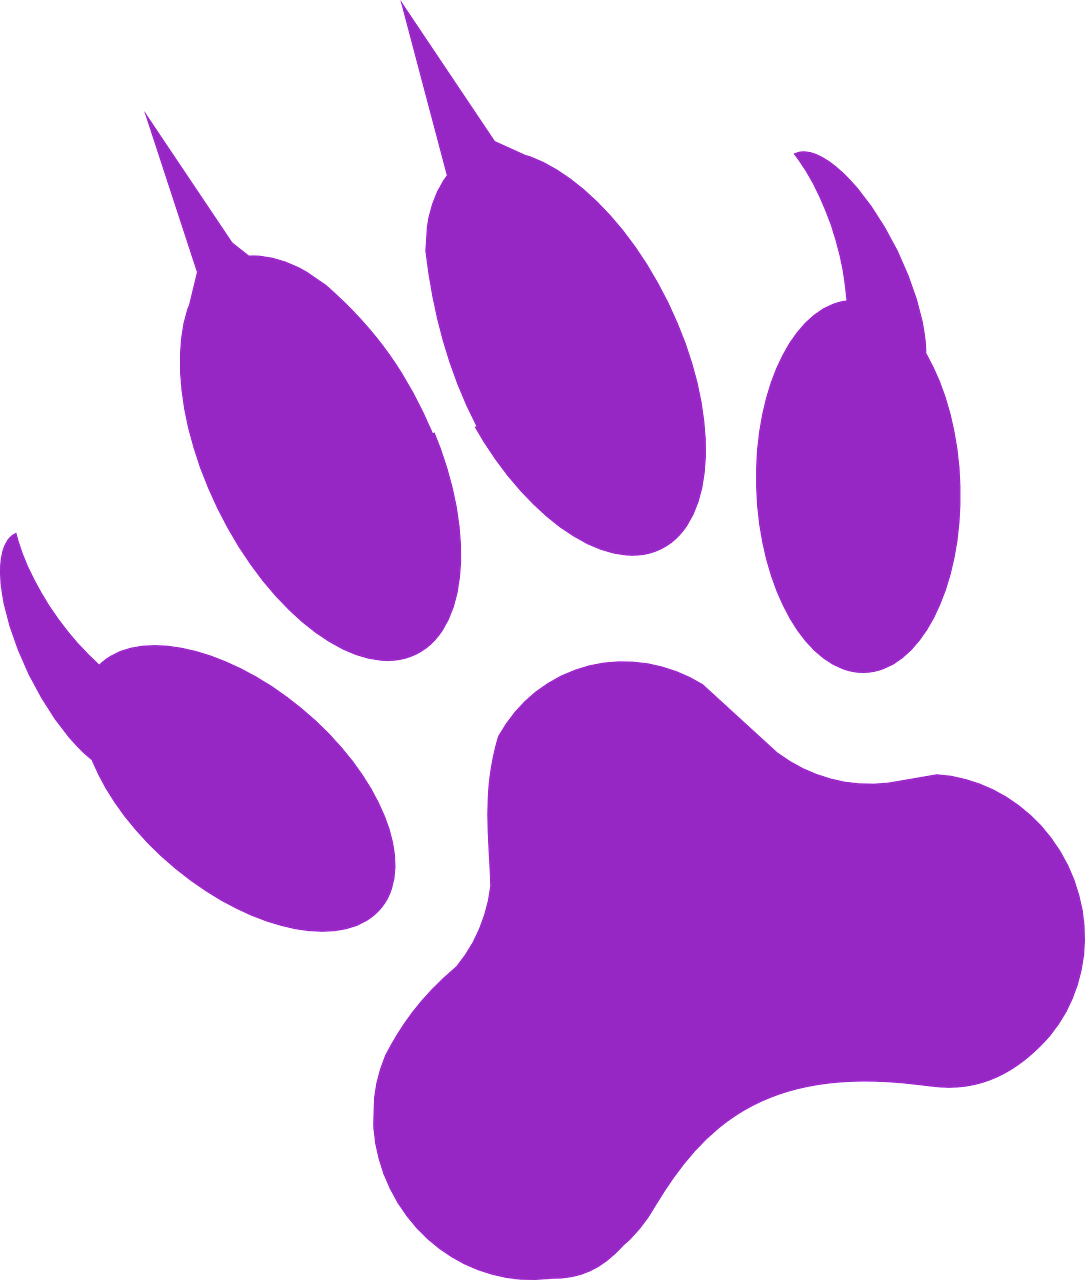 Paw Print Wolf Purple Wild Png Picpng The best selection of royalty free wolf paw print vector art, graphics and stock illustrations. paw print wolf purple wild png picpng